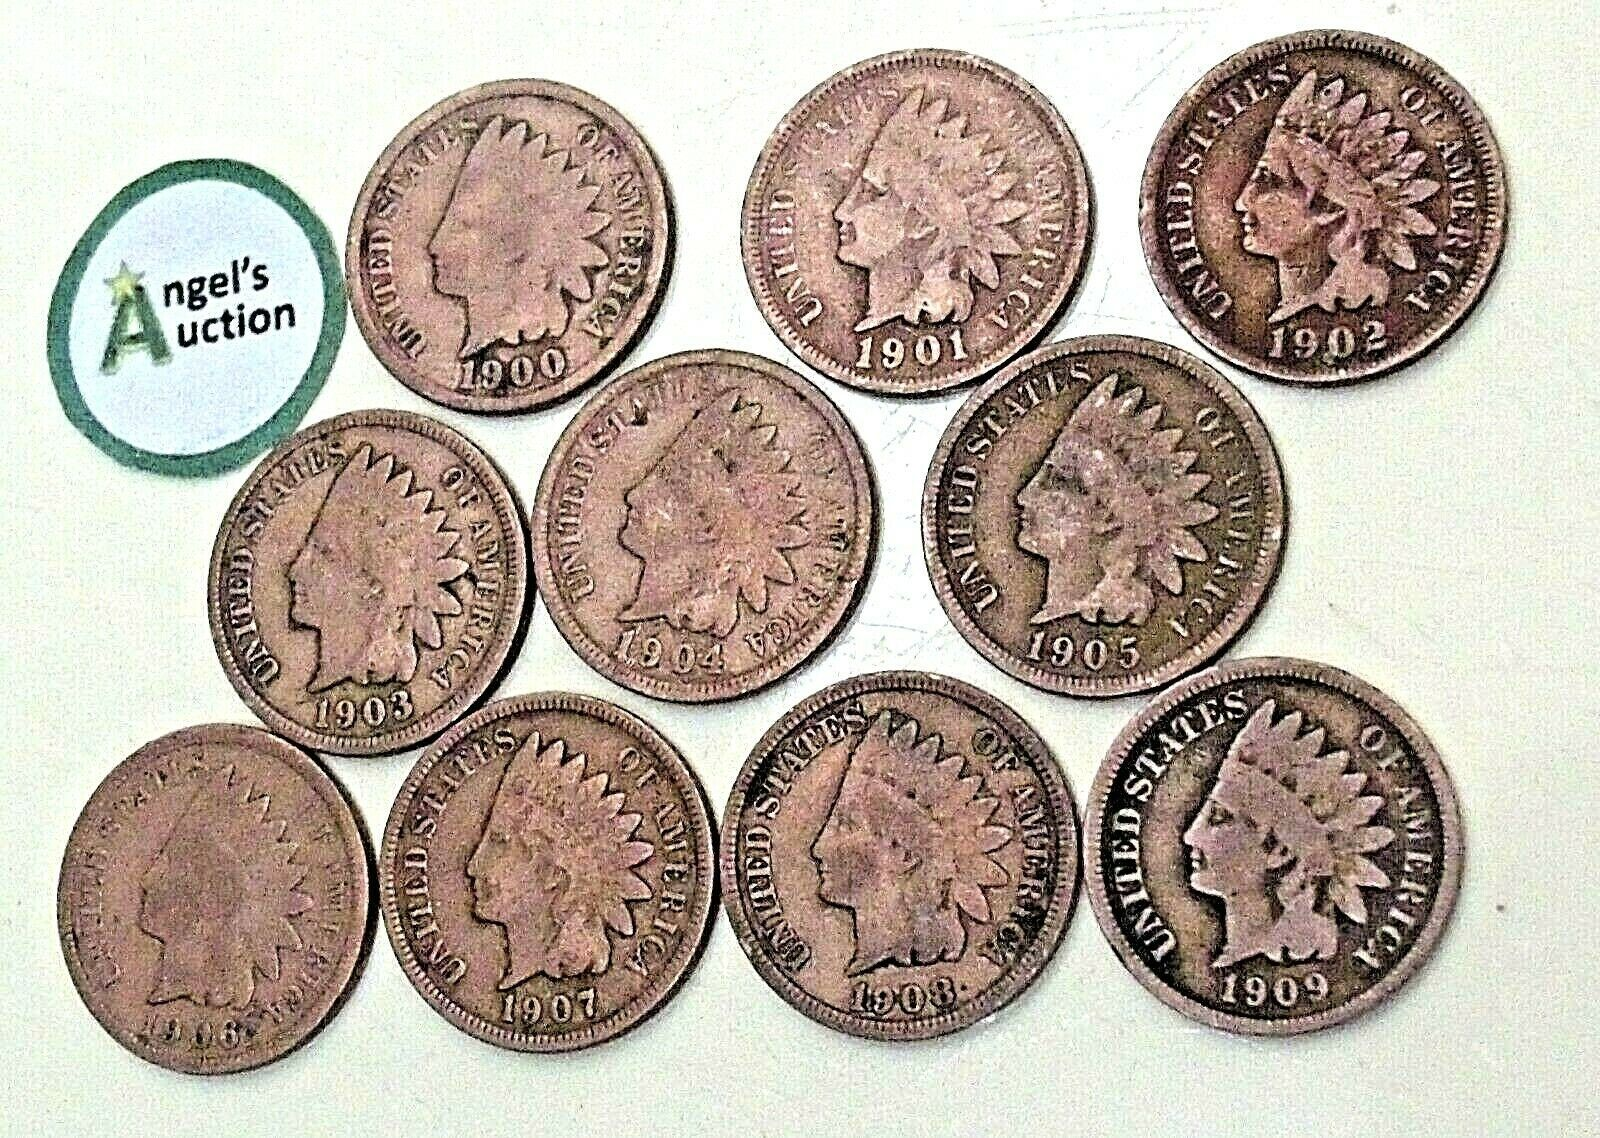 Indian Head Penny 1900, 1901,1902, 1903, 1904, 1905, 1906, 1907, 1908 and 1909